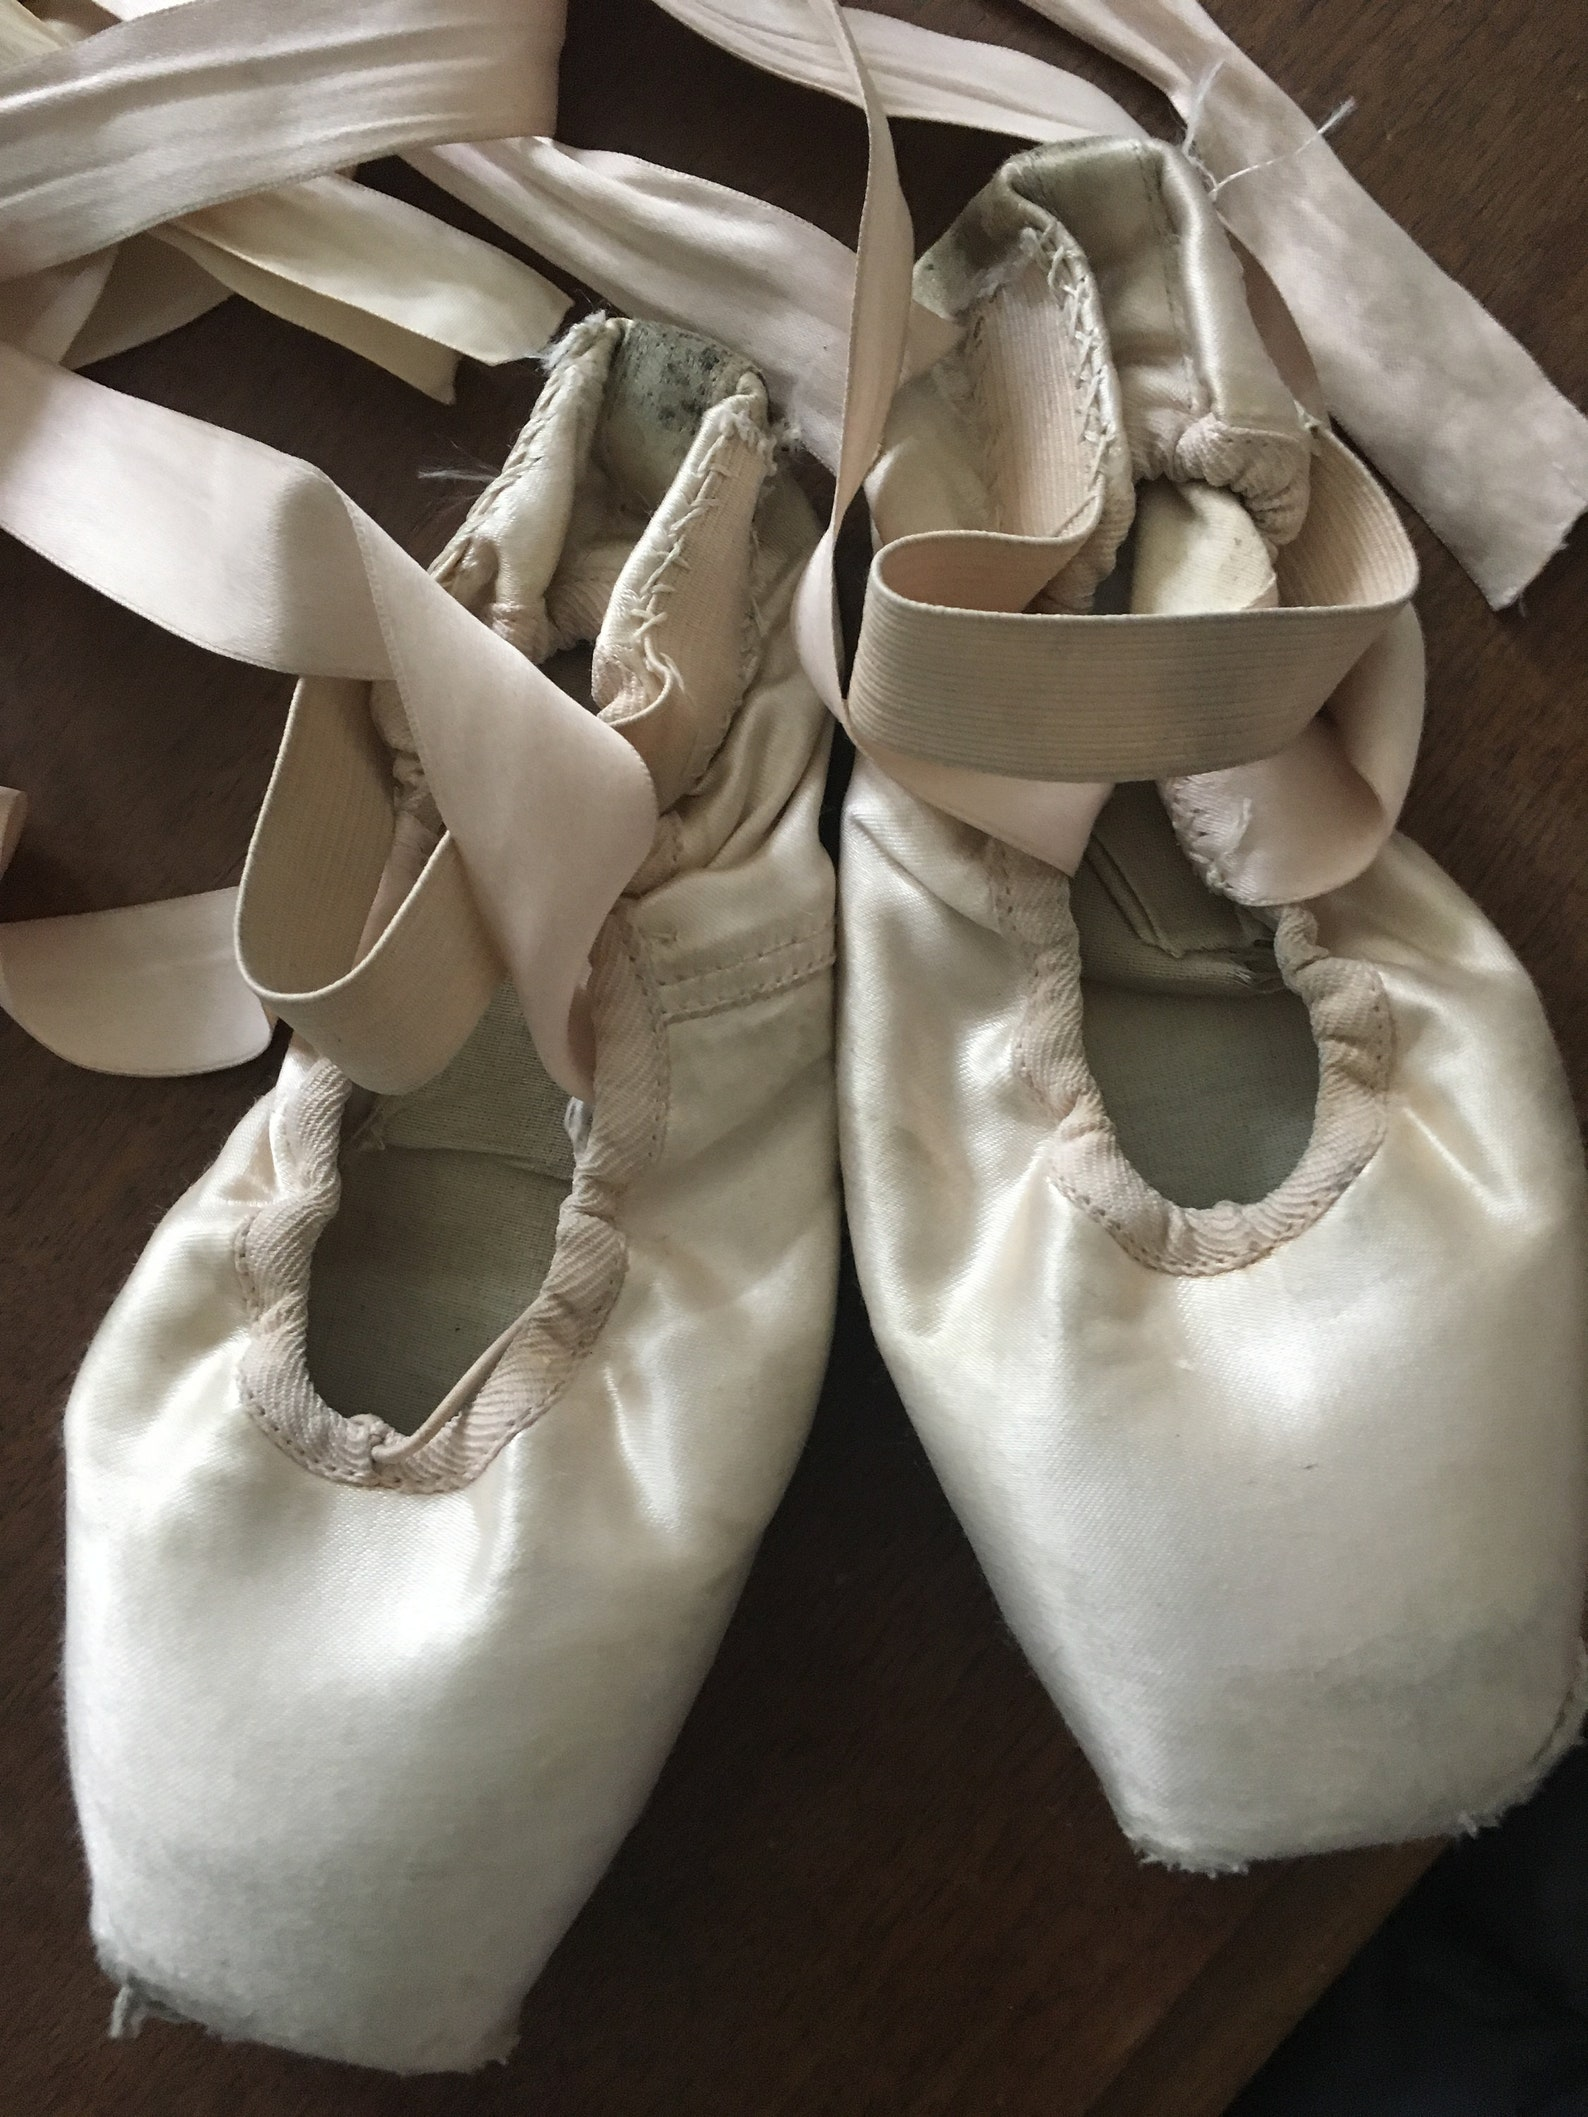 1 pair pointe shoes. used pointe shoes. dead pointe shoes. russian ballet shoes. romantic pink decor. shabby chic decor. fairyta